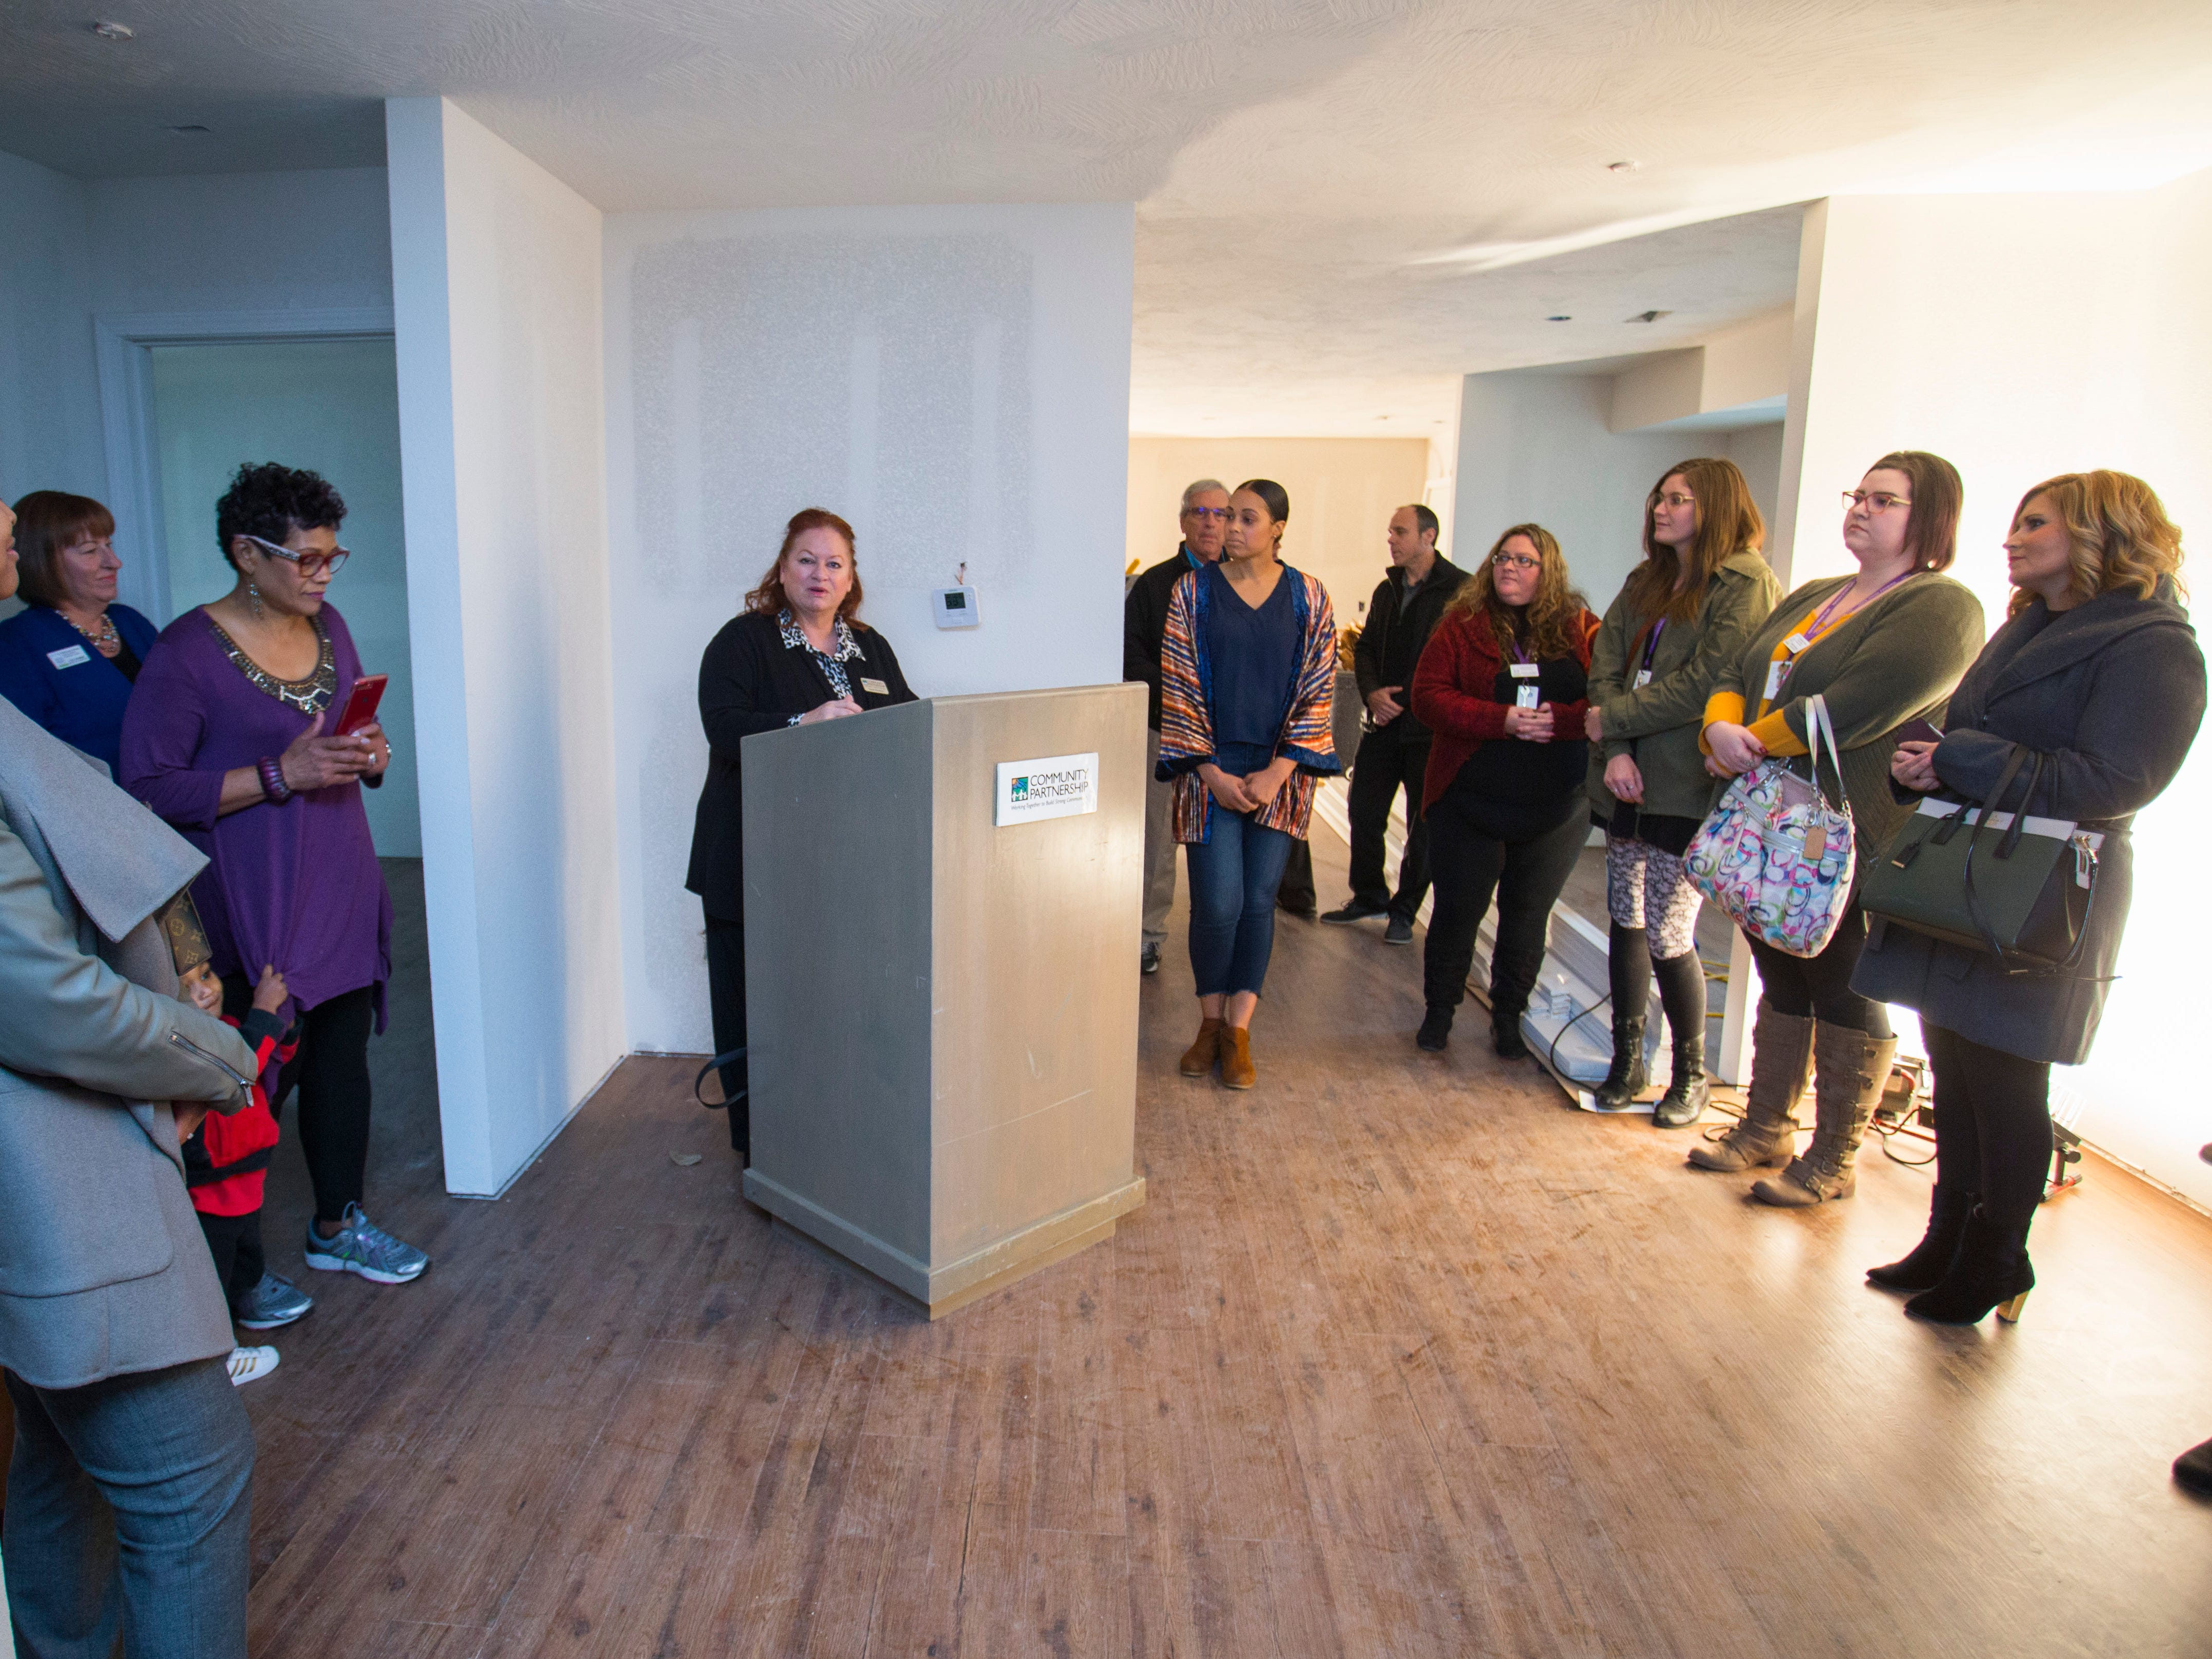 Janet Dankert with Community Partnership of the Ozarks speaks before the ribbon-cutting for Marda's House, a transitional home for domestic violence victims, on Tuesday, Nov. 27, 2018.